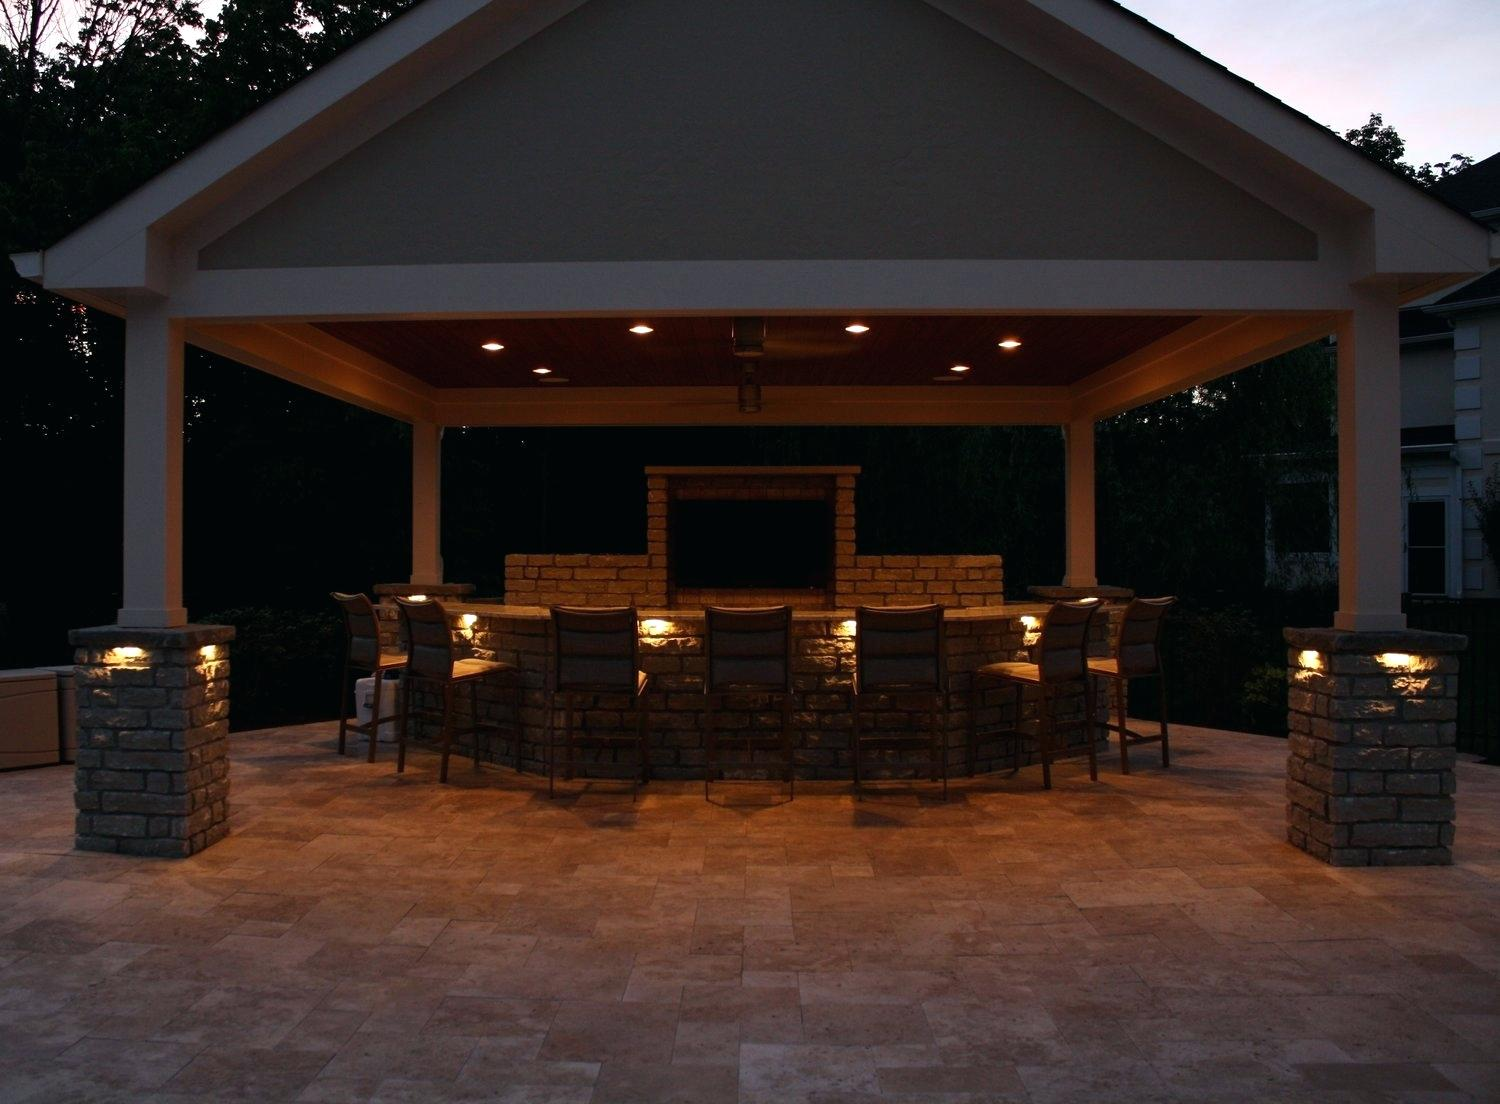 Accent lights-Bradenton FL Outdoor Lighting Installers-We Offer Outdoor Lighting Services, Landscape Lighting, Low Voltage Lighting, Outdoor LED landscape Lighting, Holiday Lighting, Christmas Lighting, Tree Lighting, Canopy Lighting, Residential outdoor Lighting, Commercial outdoor Lighting, Safety Lighting, Path and Garden Lighting, Mini lights and flood lights, Landscape Lighting installation, Outdoor spot lights, Outdoor LED garden Lighting, Dock Lighting, Accent lights, Deck and patio lights, Security lights, Underwater Lighting, Tree upLighting, Outdoor Lighting repair services, and more.